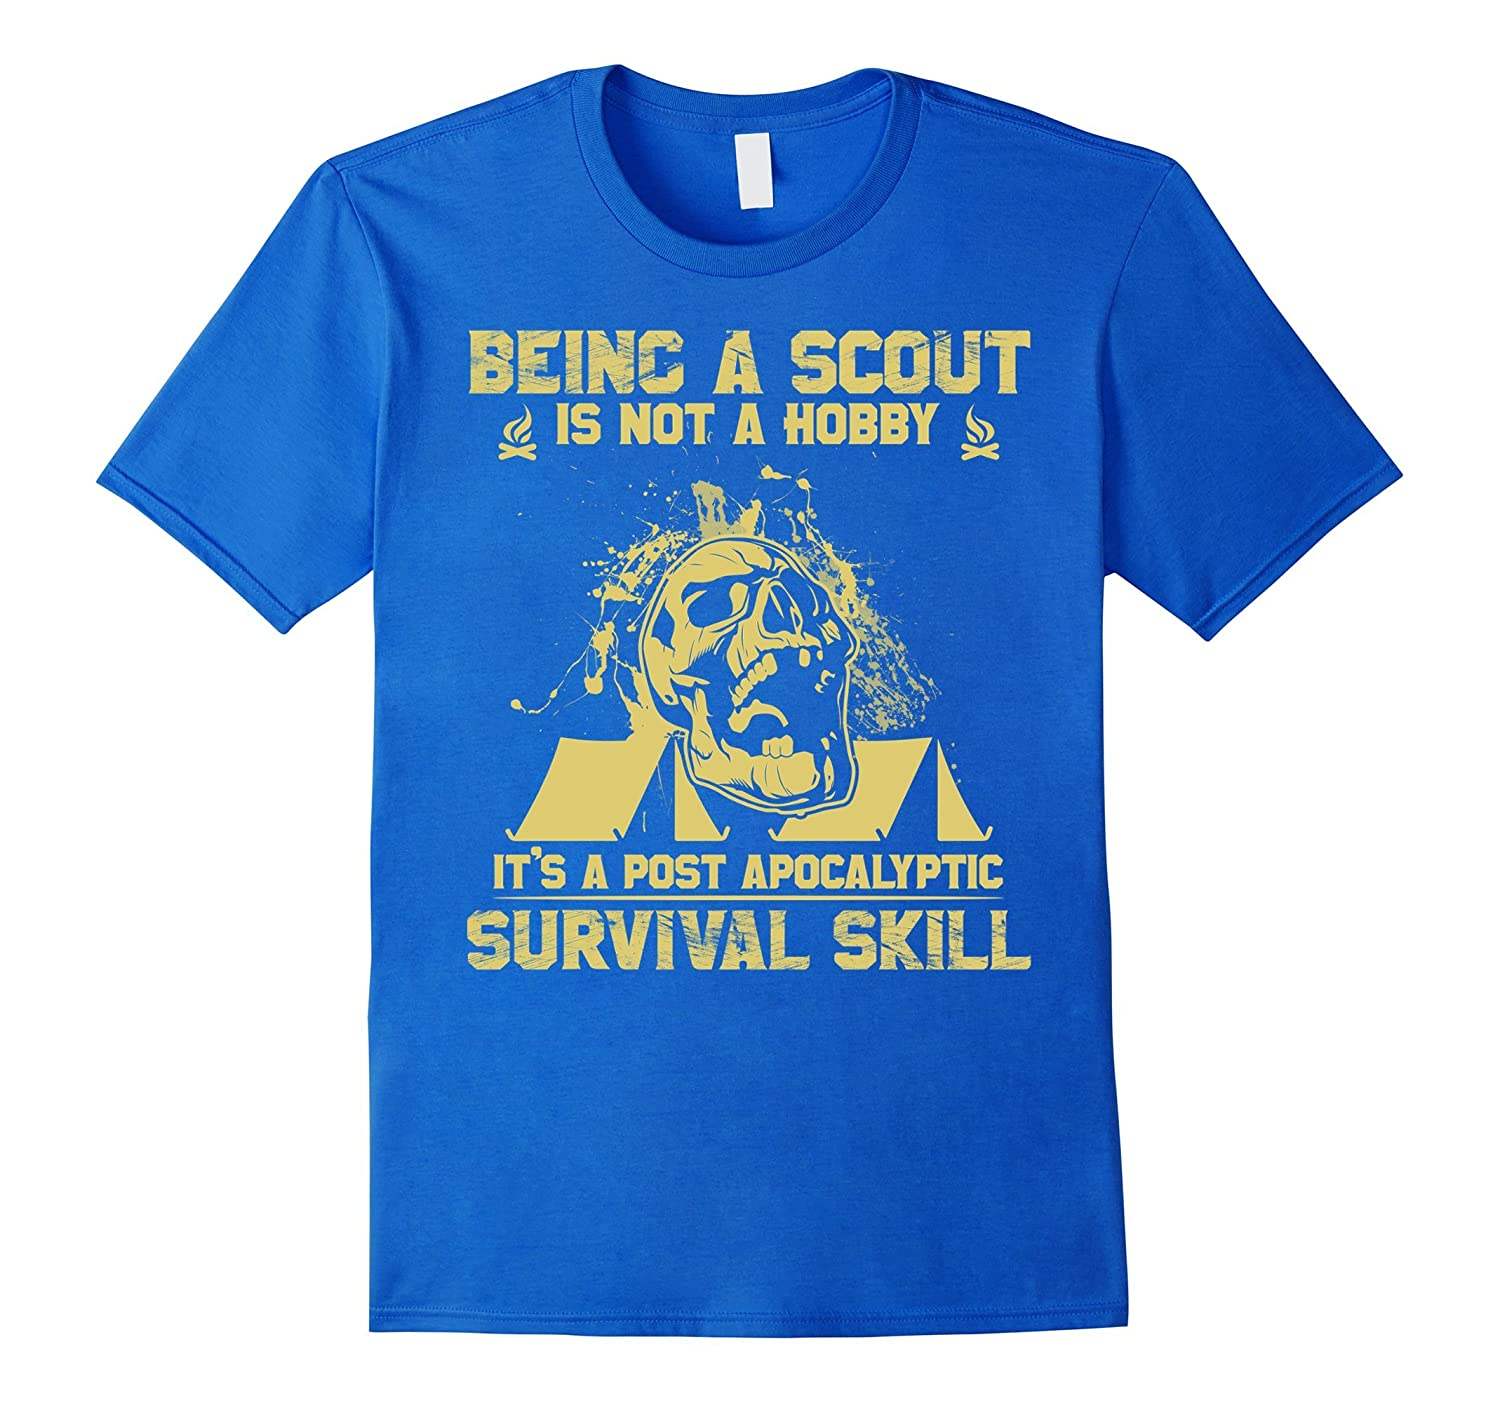 Being a Scout is not a hobby T-Shirt Best Scouting Shirt-TH